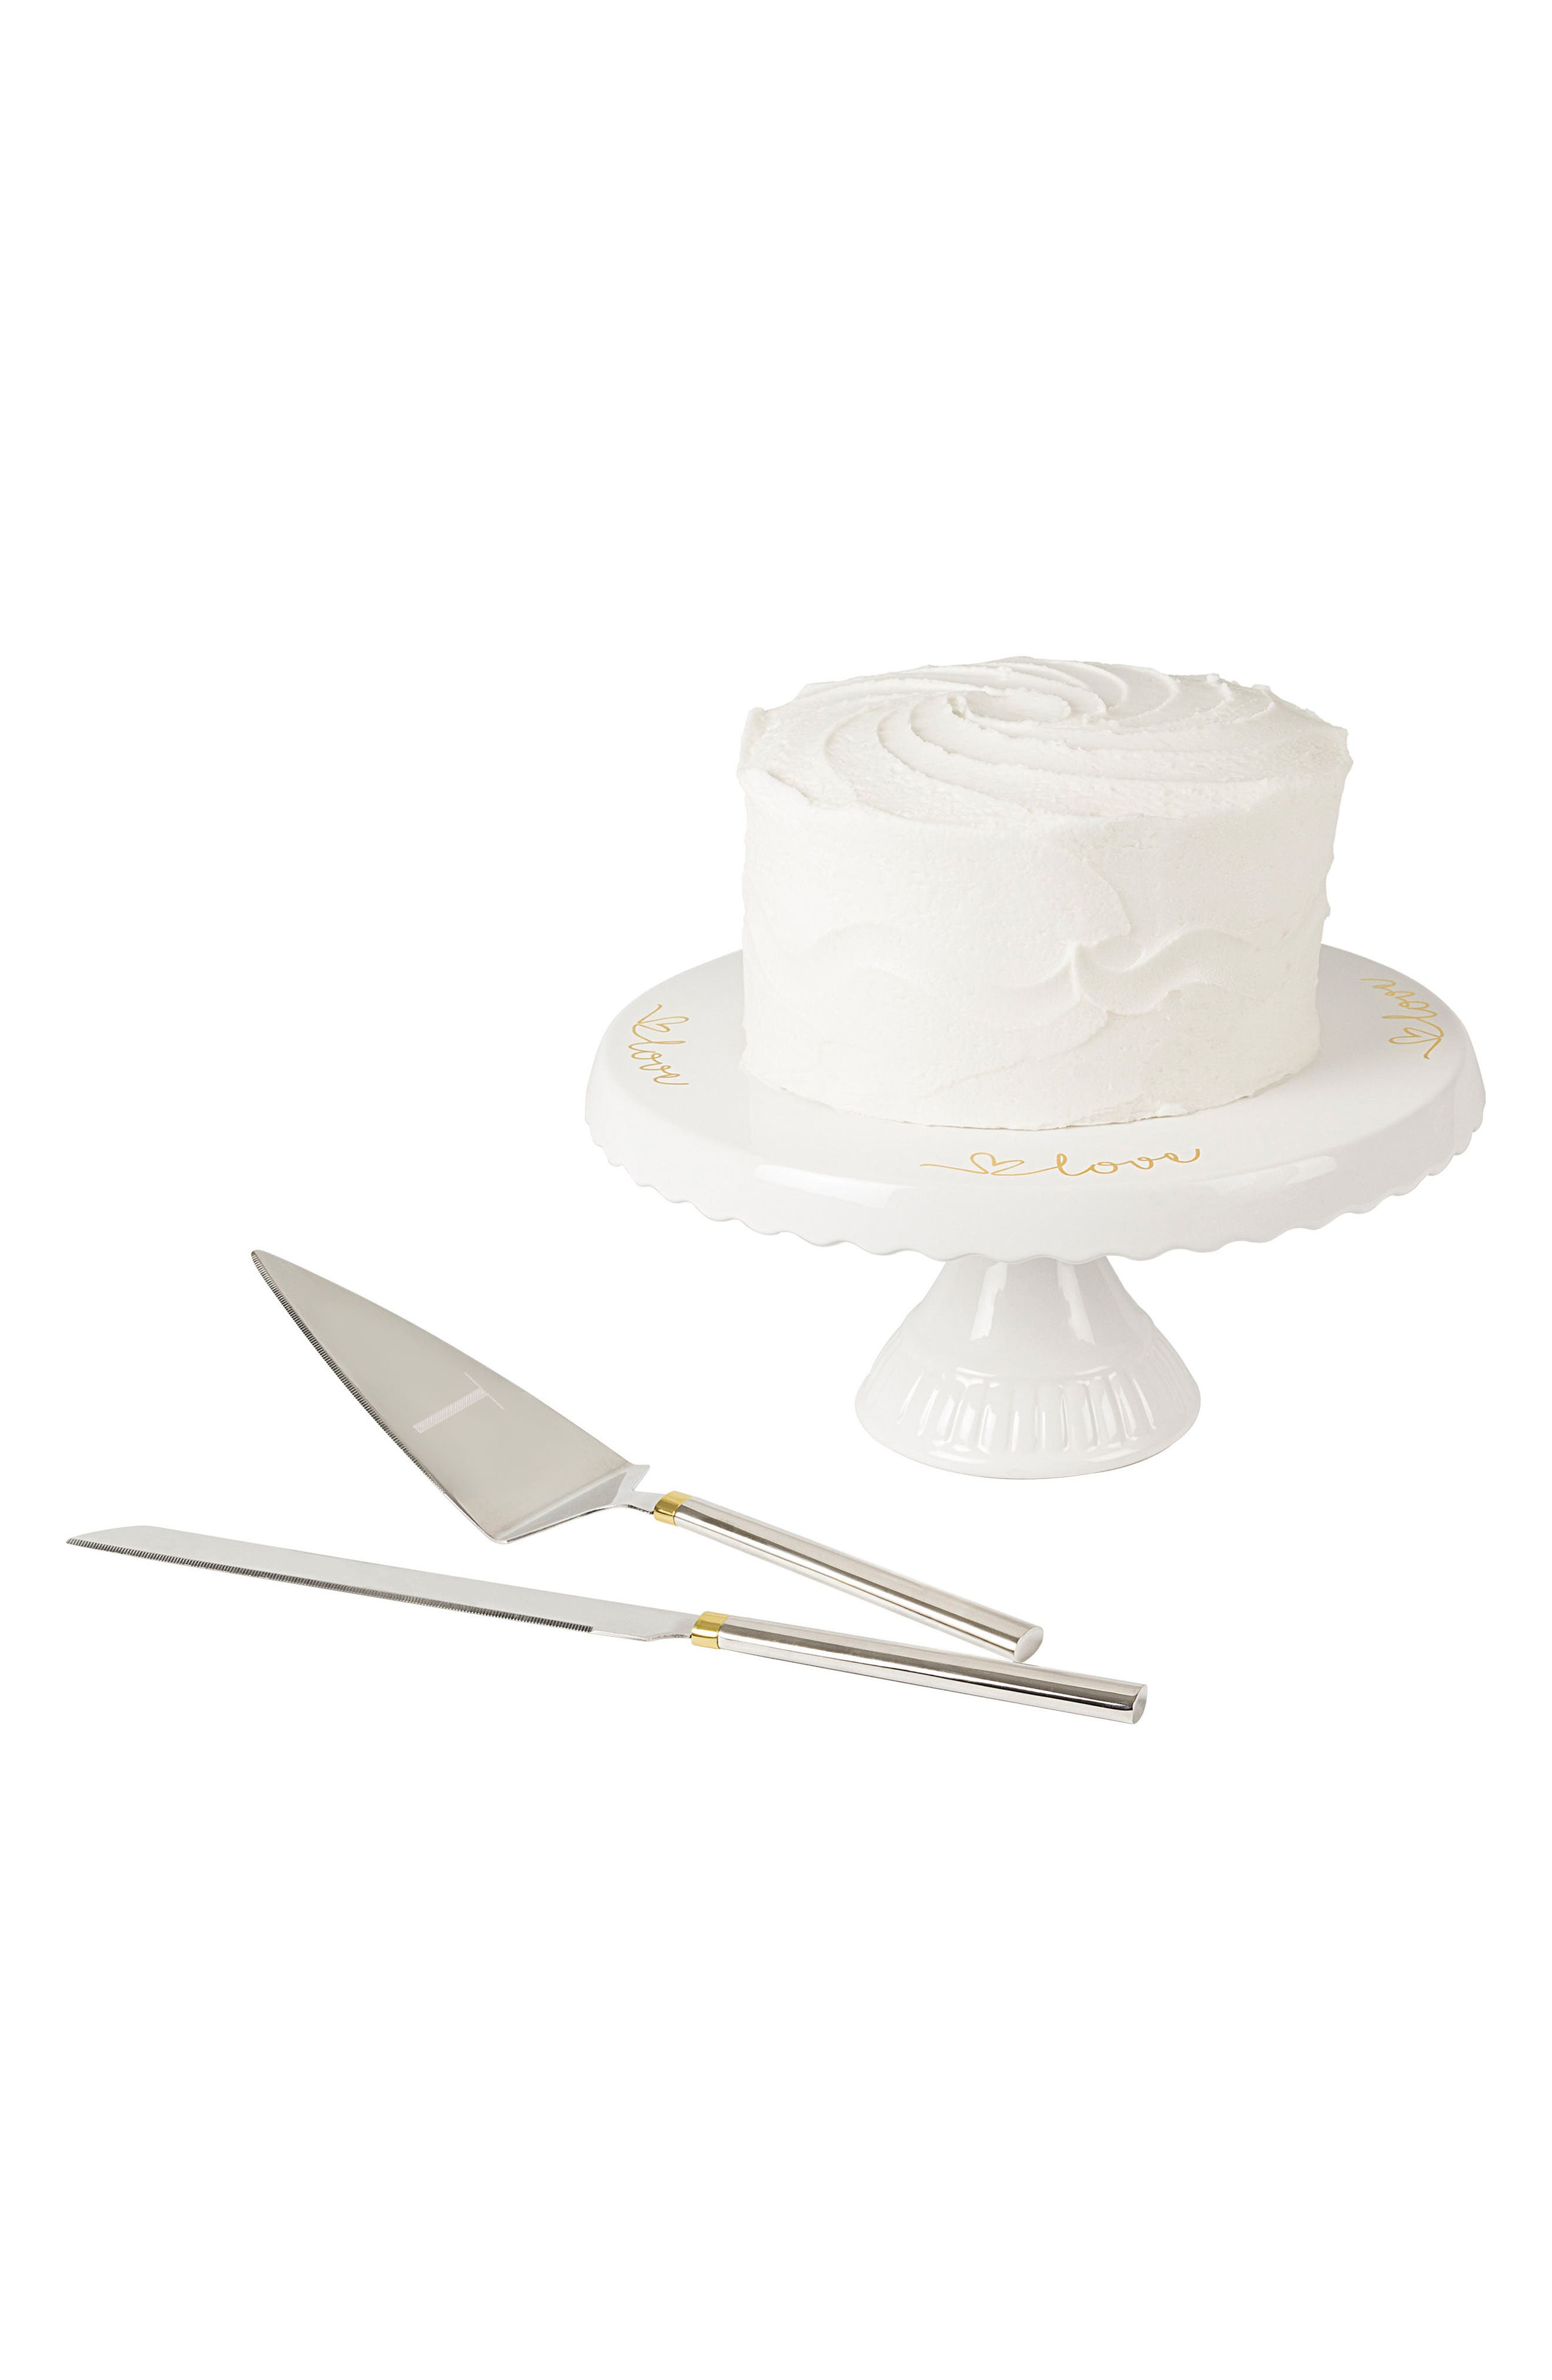 Love Monogram Cake Stand & Server Set,                             Main thumbnail 21, color,